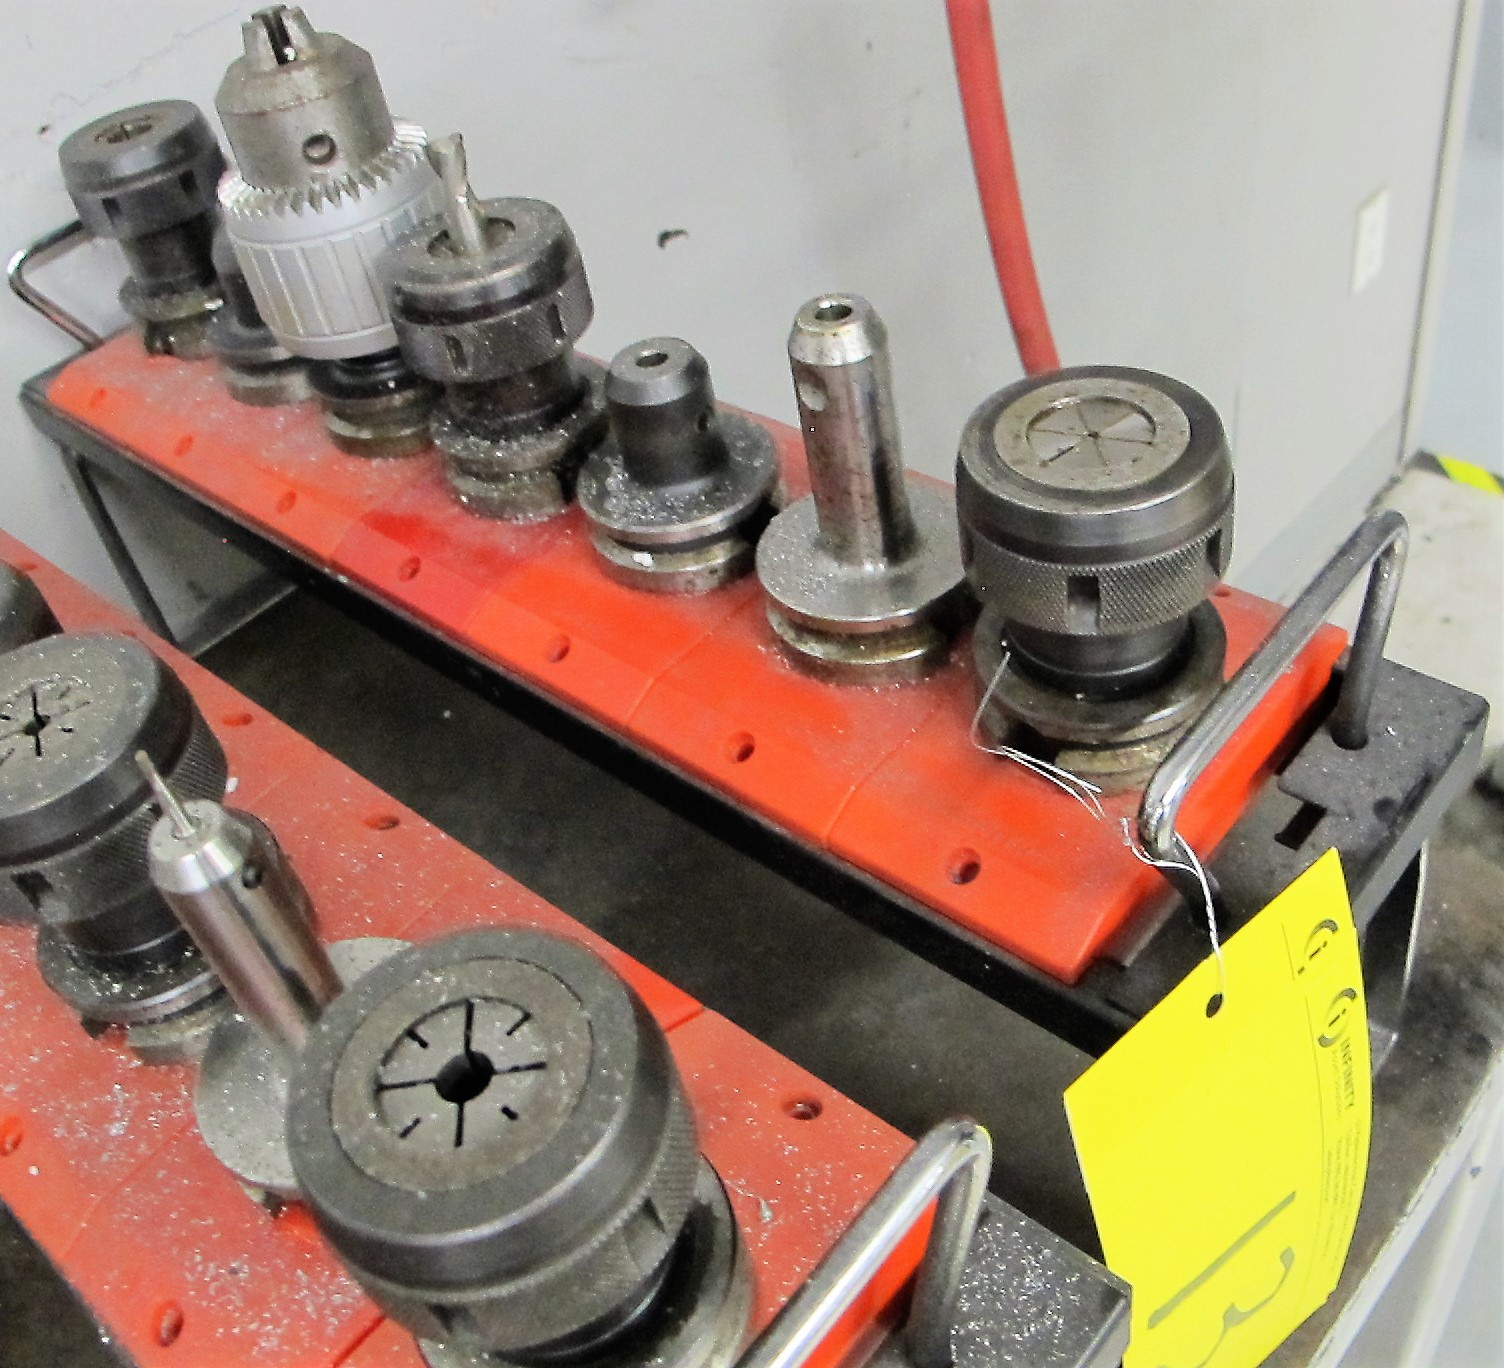 LOT OF 7 - 40 TAPER TOOL HOLDERS W/ATTACHMENT AND HOLDER TRAY